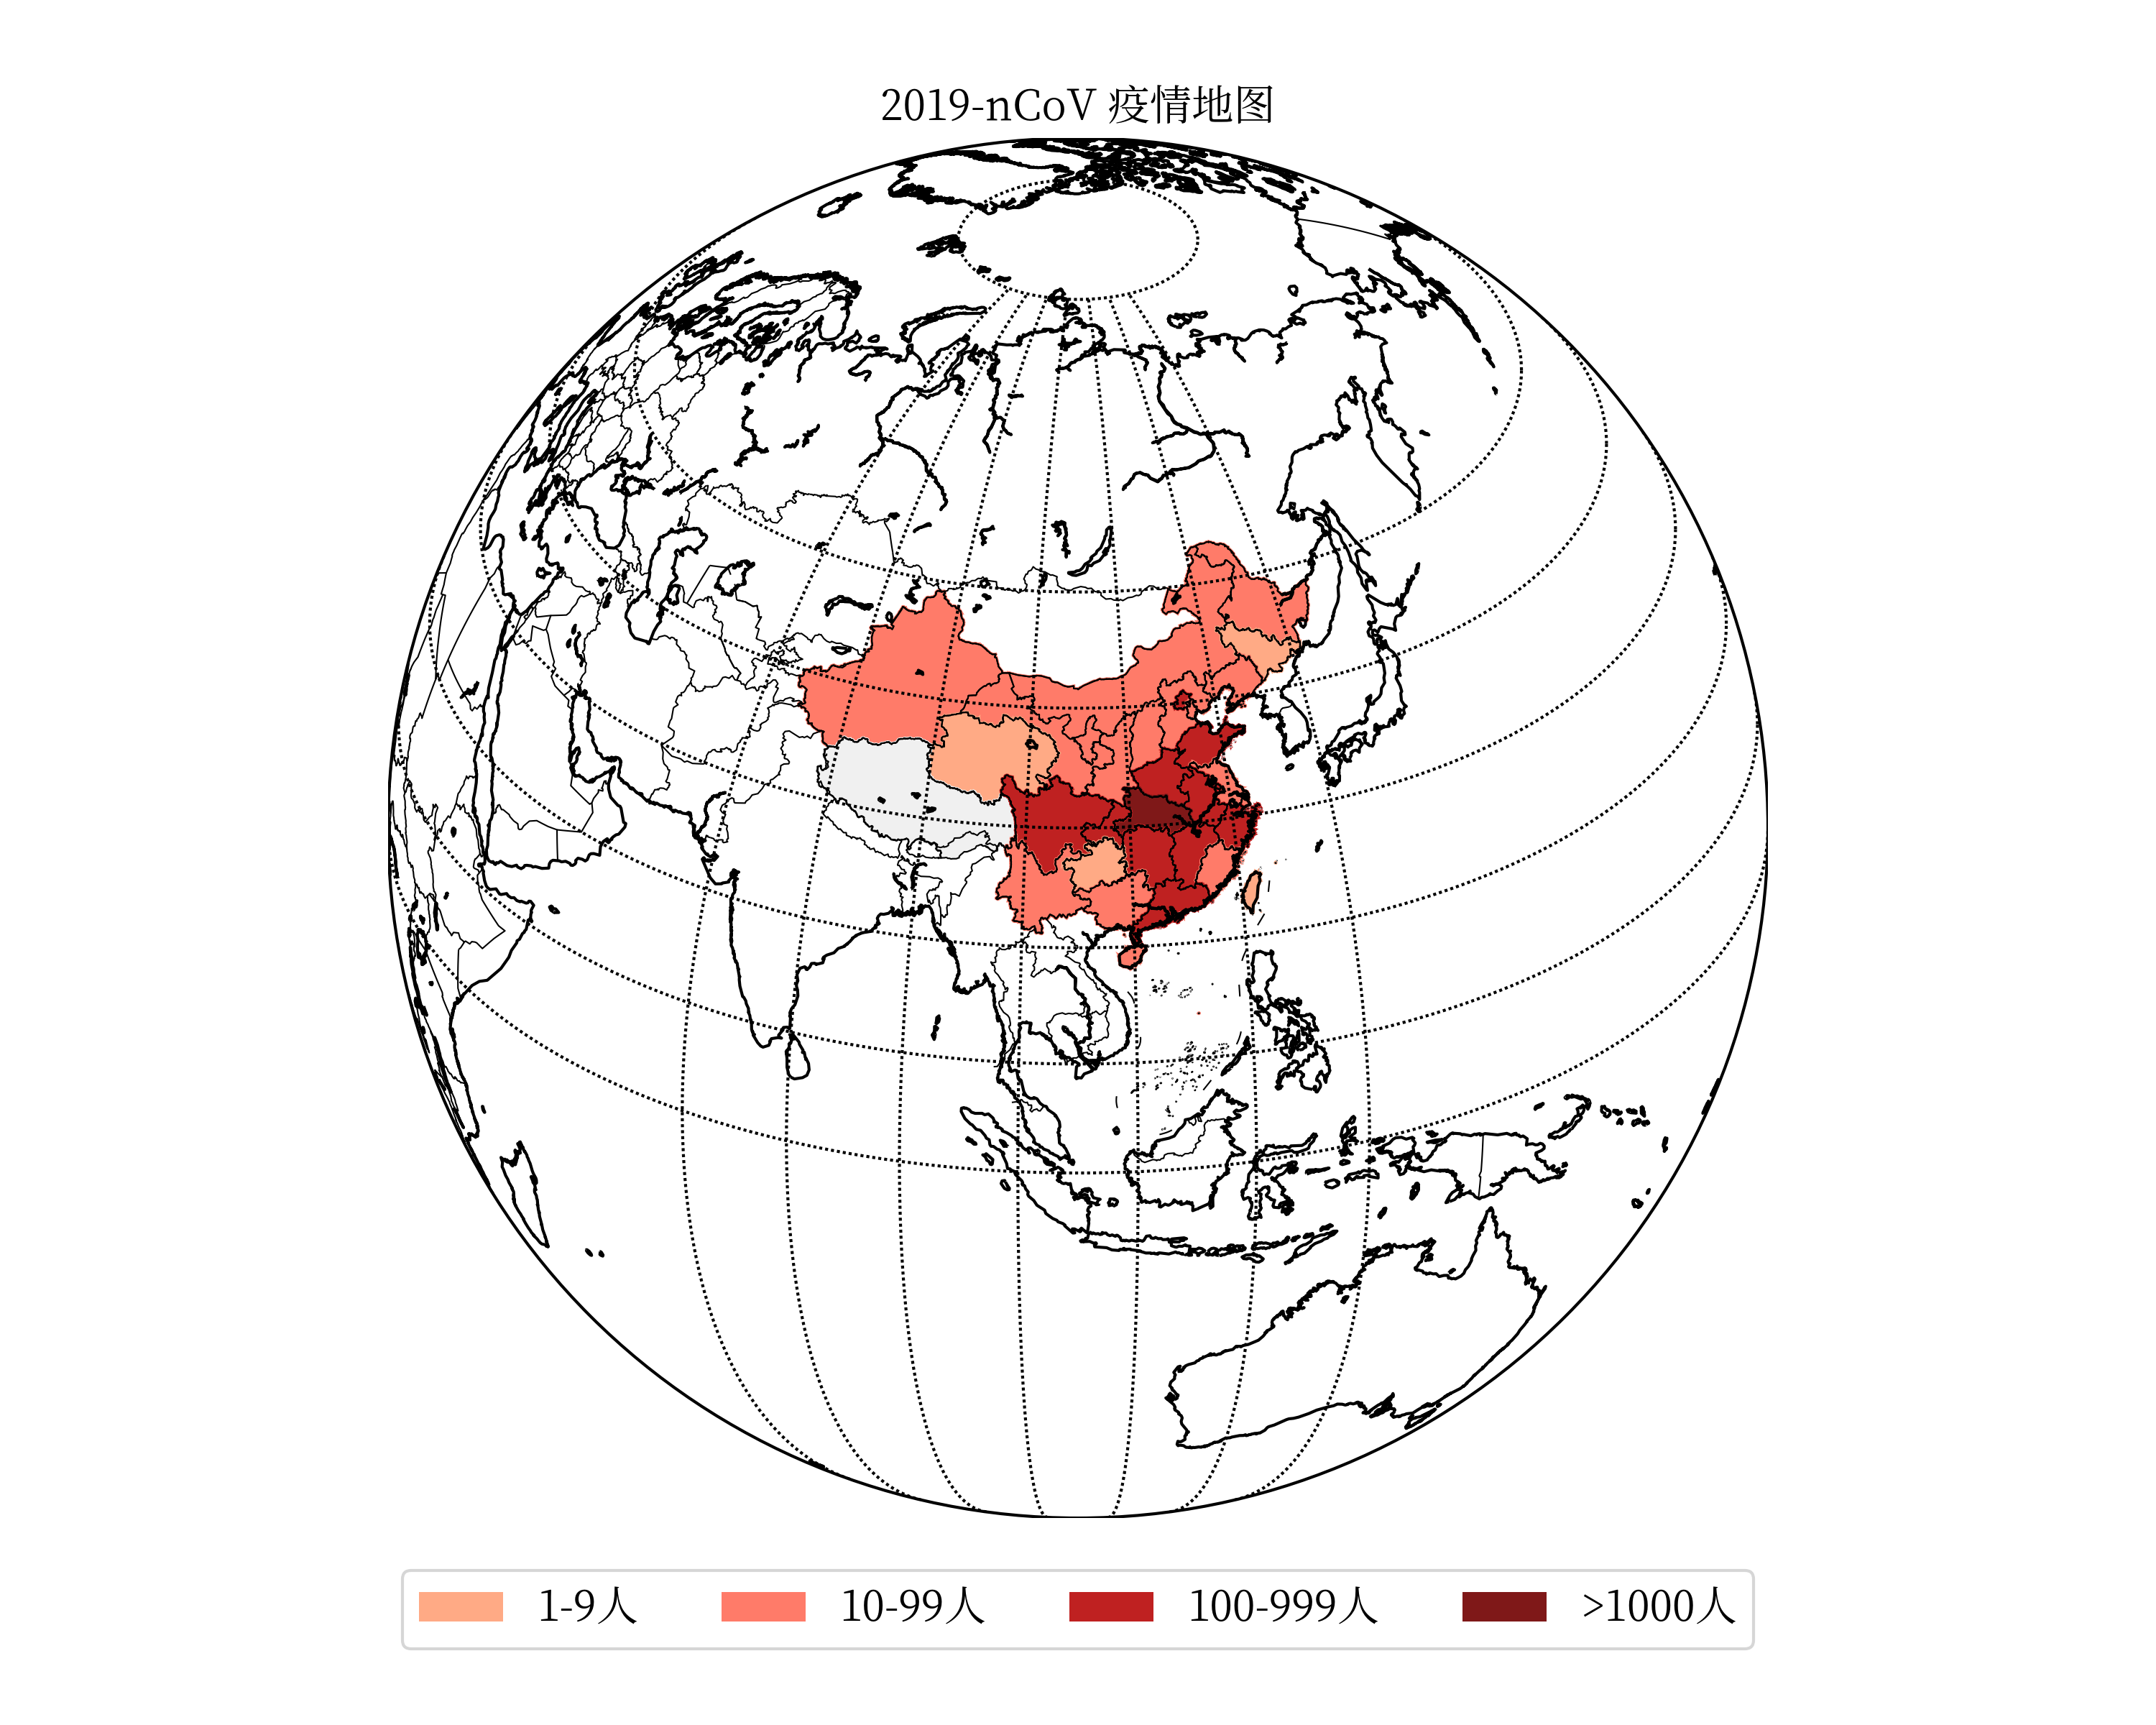 draw-the-map-of-2019-ncov-epidemic-distribution-4.png